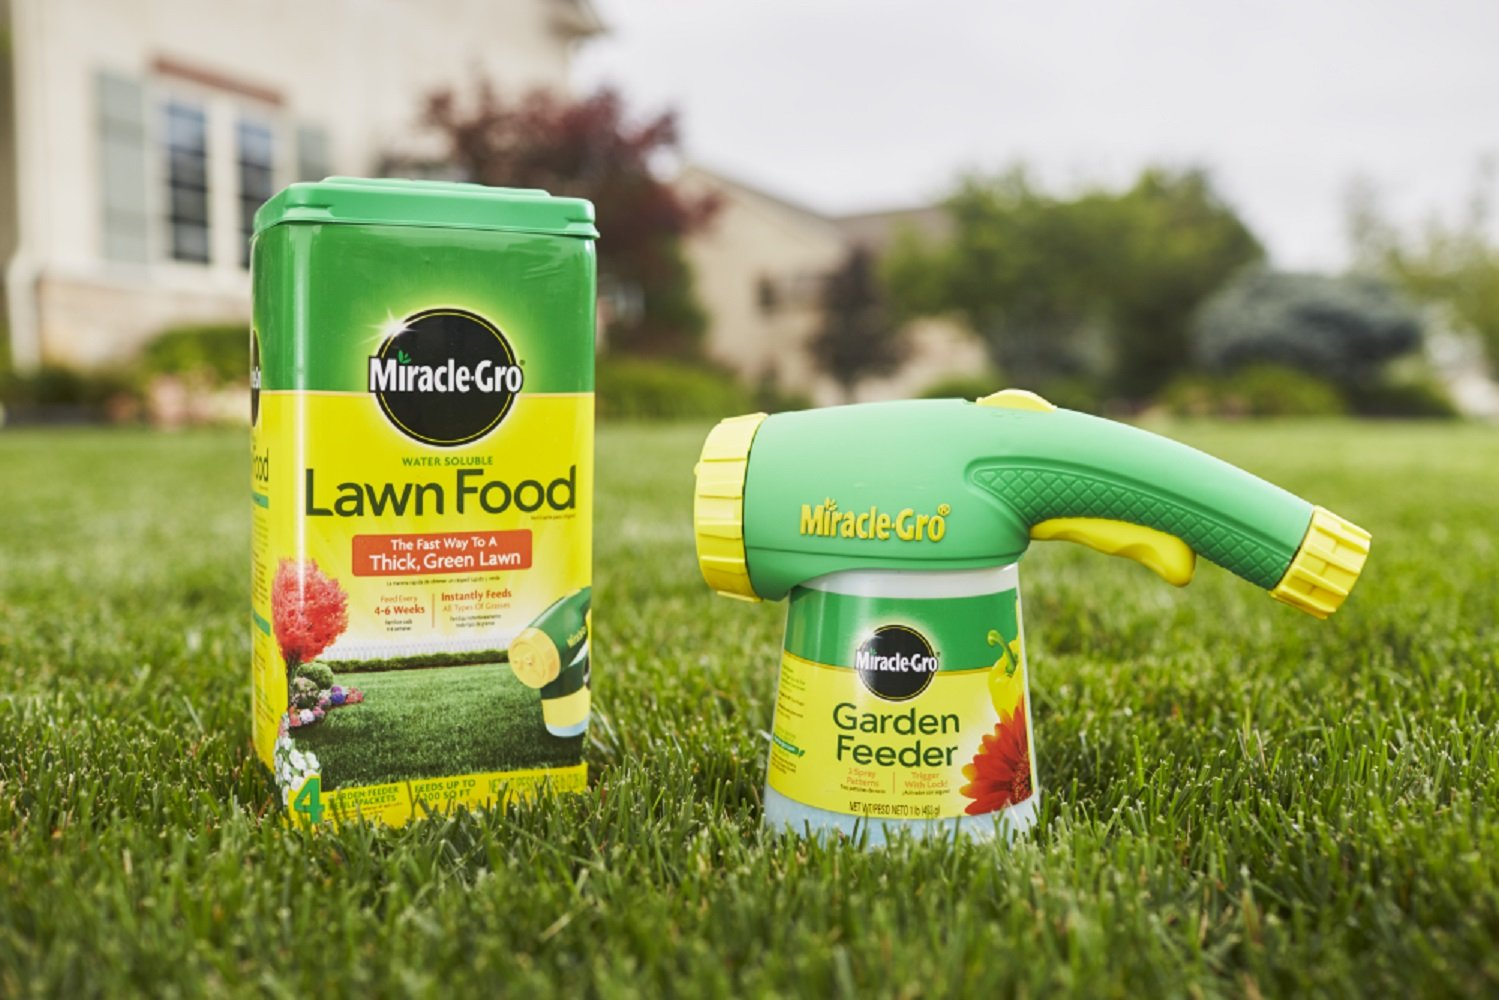 Miracle Gro lawn food best 2020 lawn fertilizer